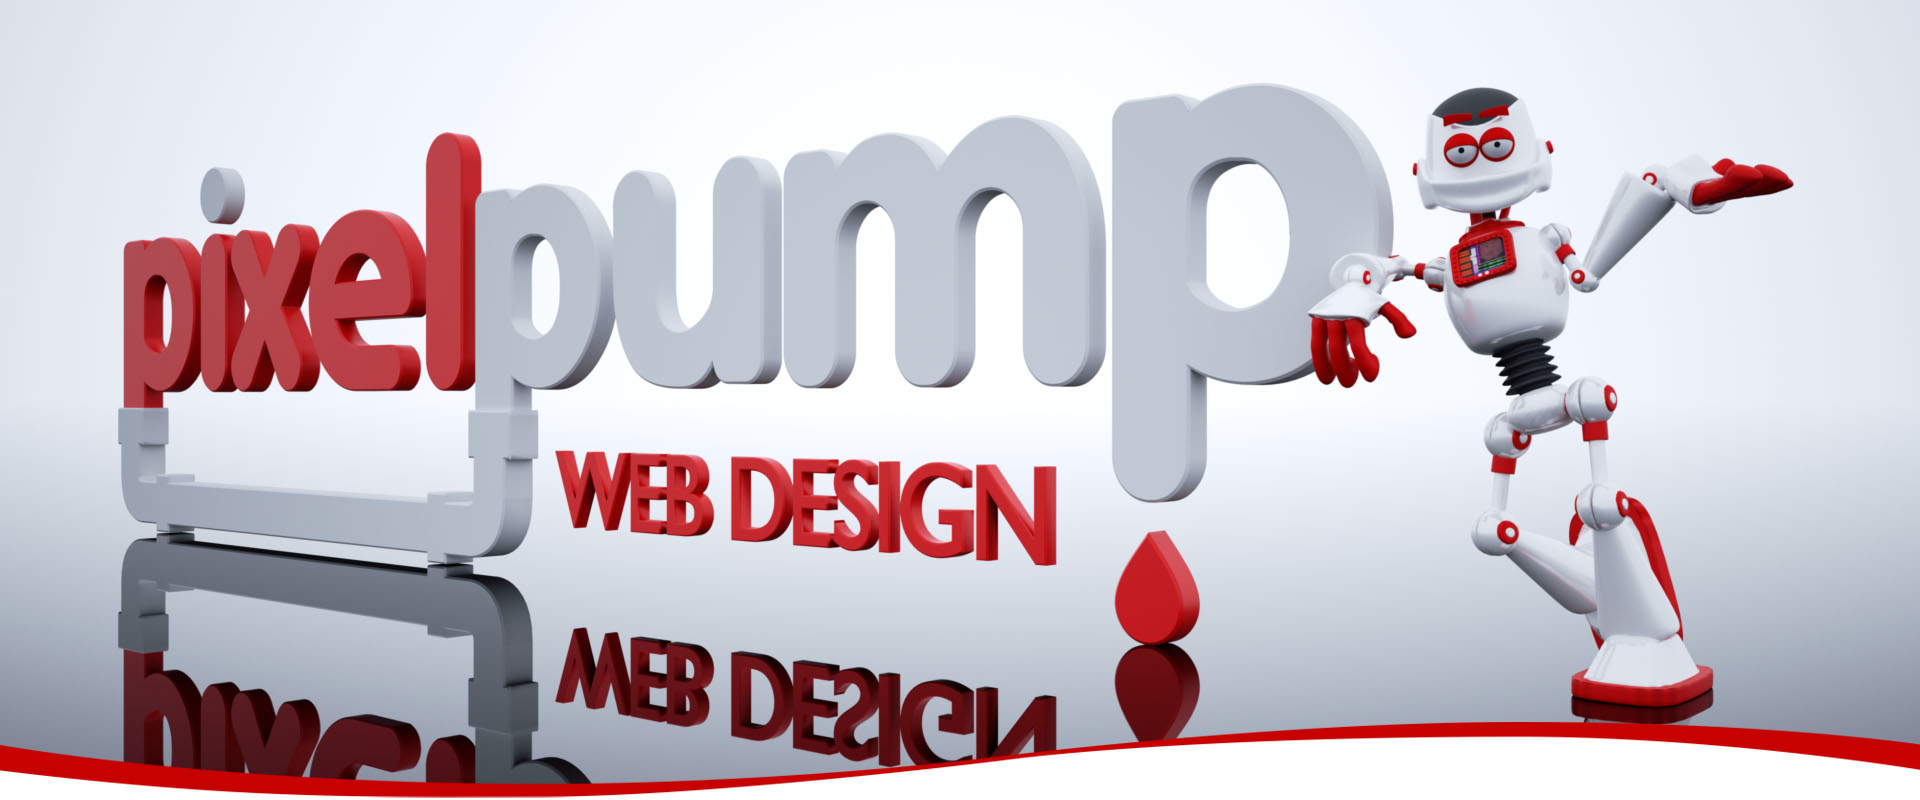 PixelPump - Web Design Australia